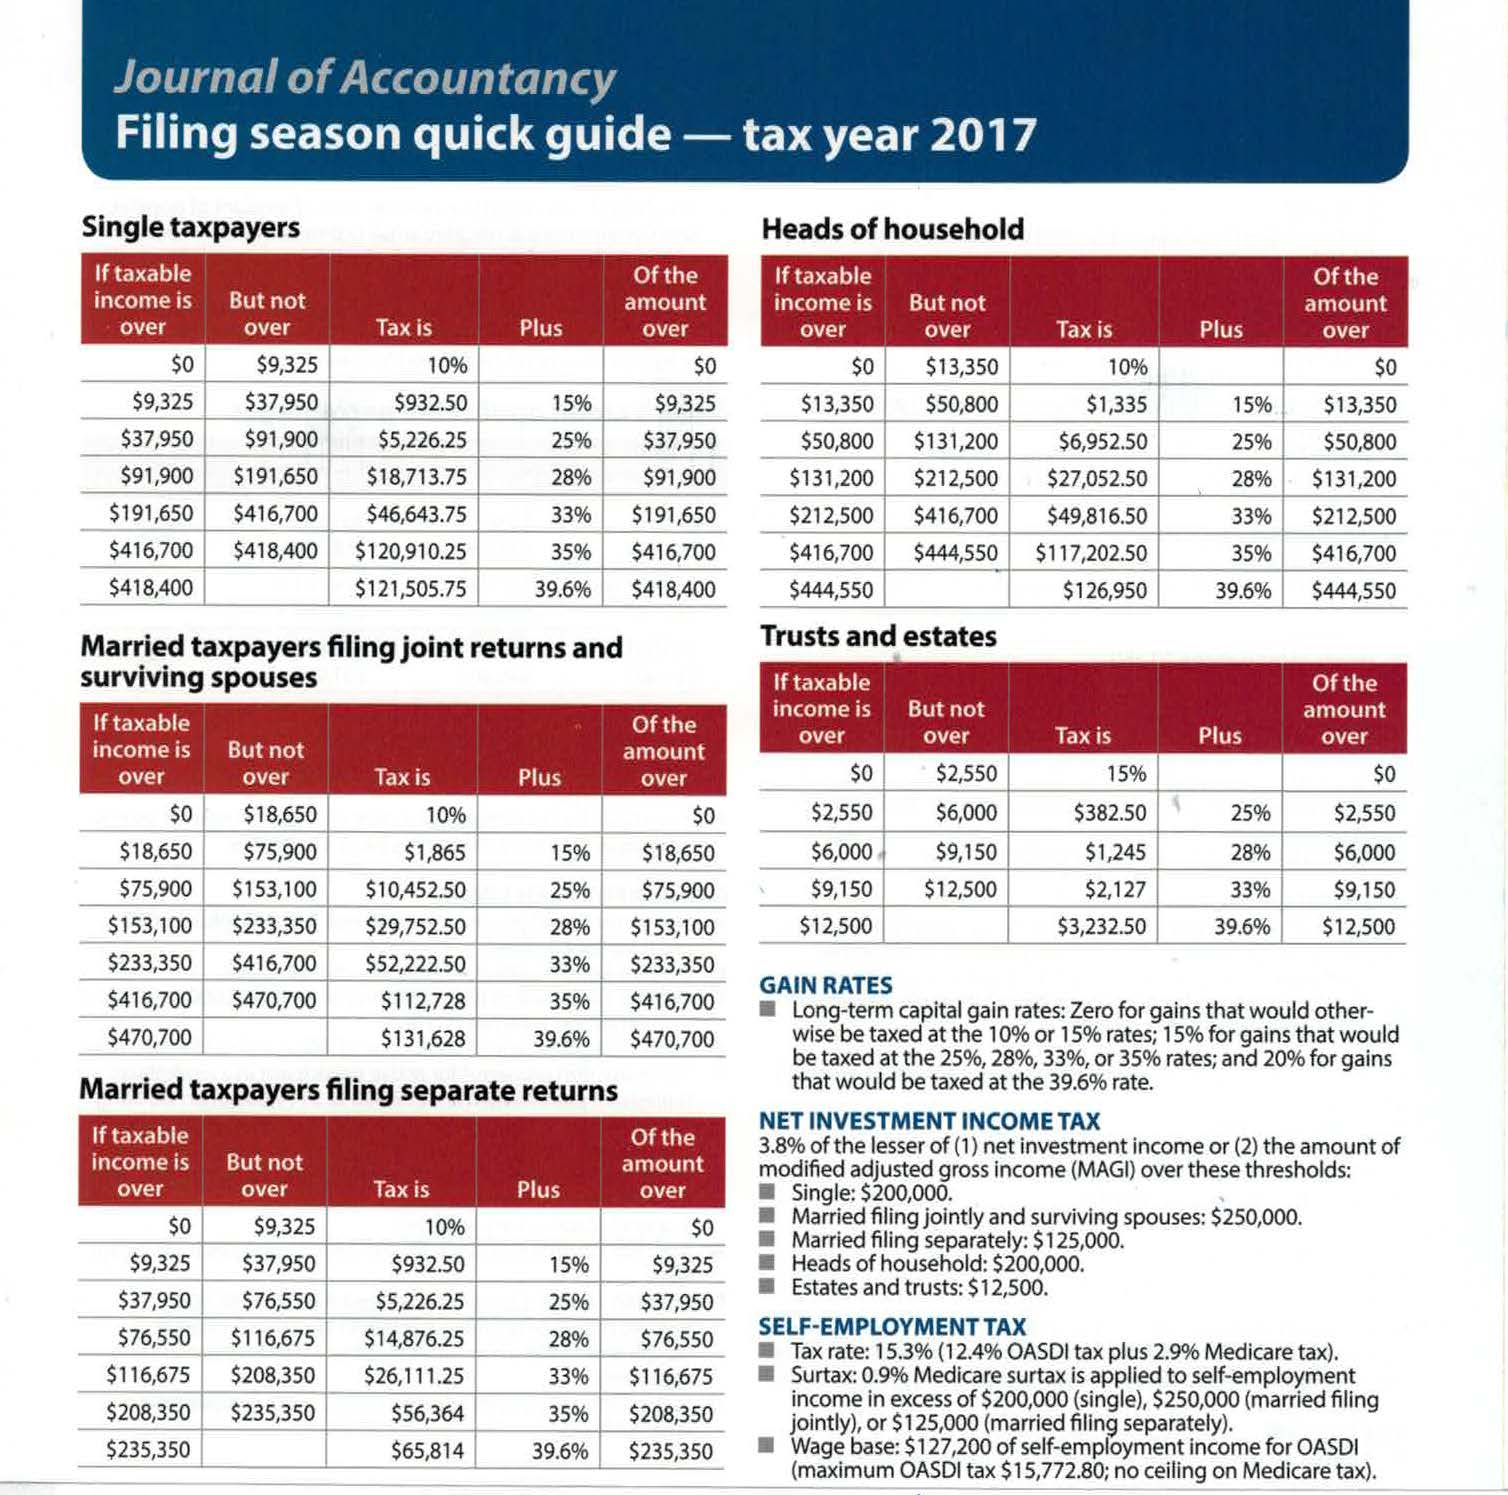 Journal of Accountancy Filing season quick guide for tax year 2017